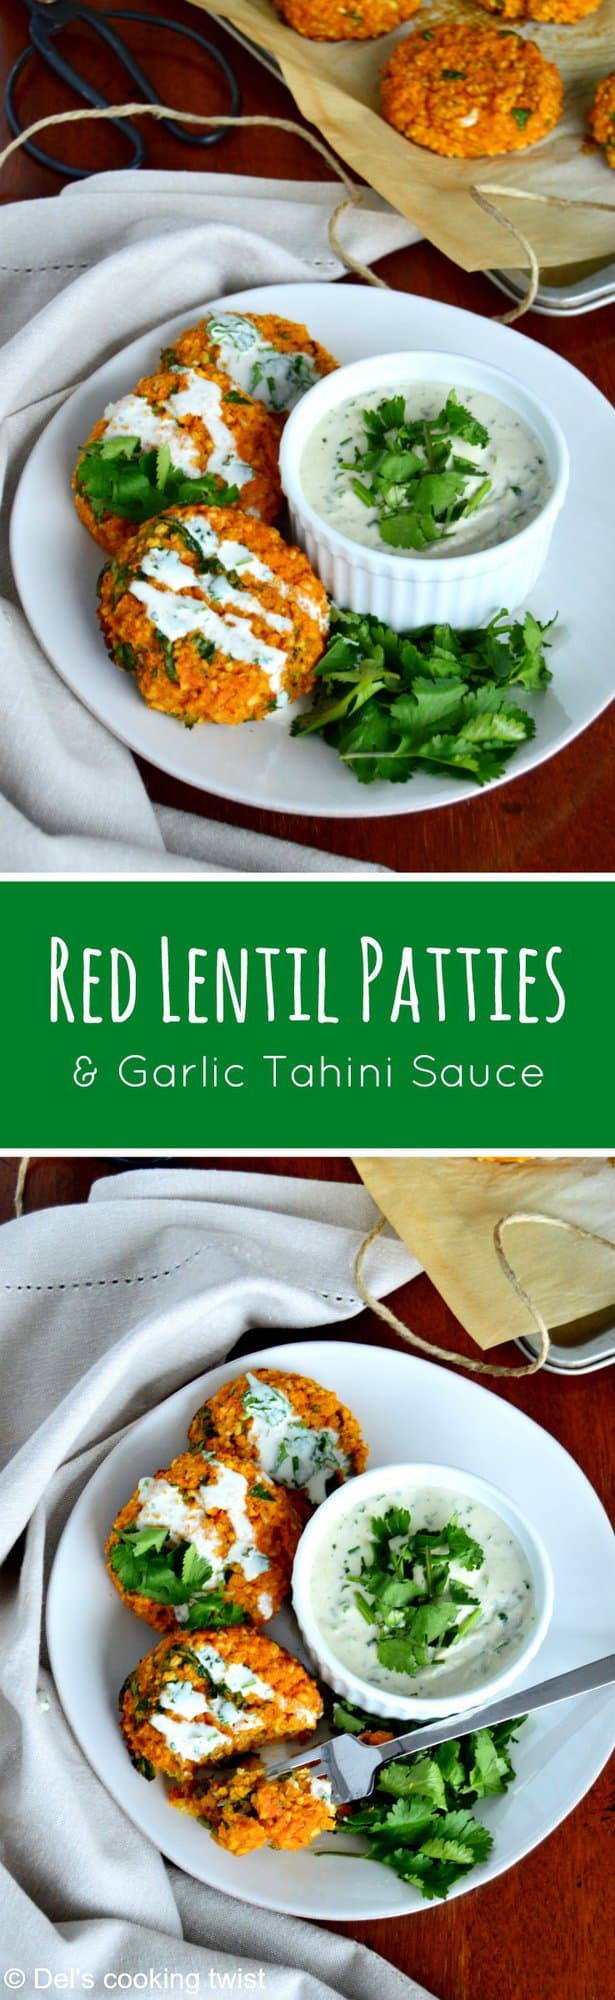 Red Lentil Patties with a Tahini Sauce